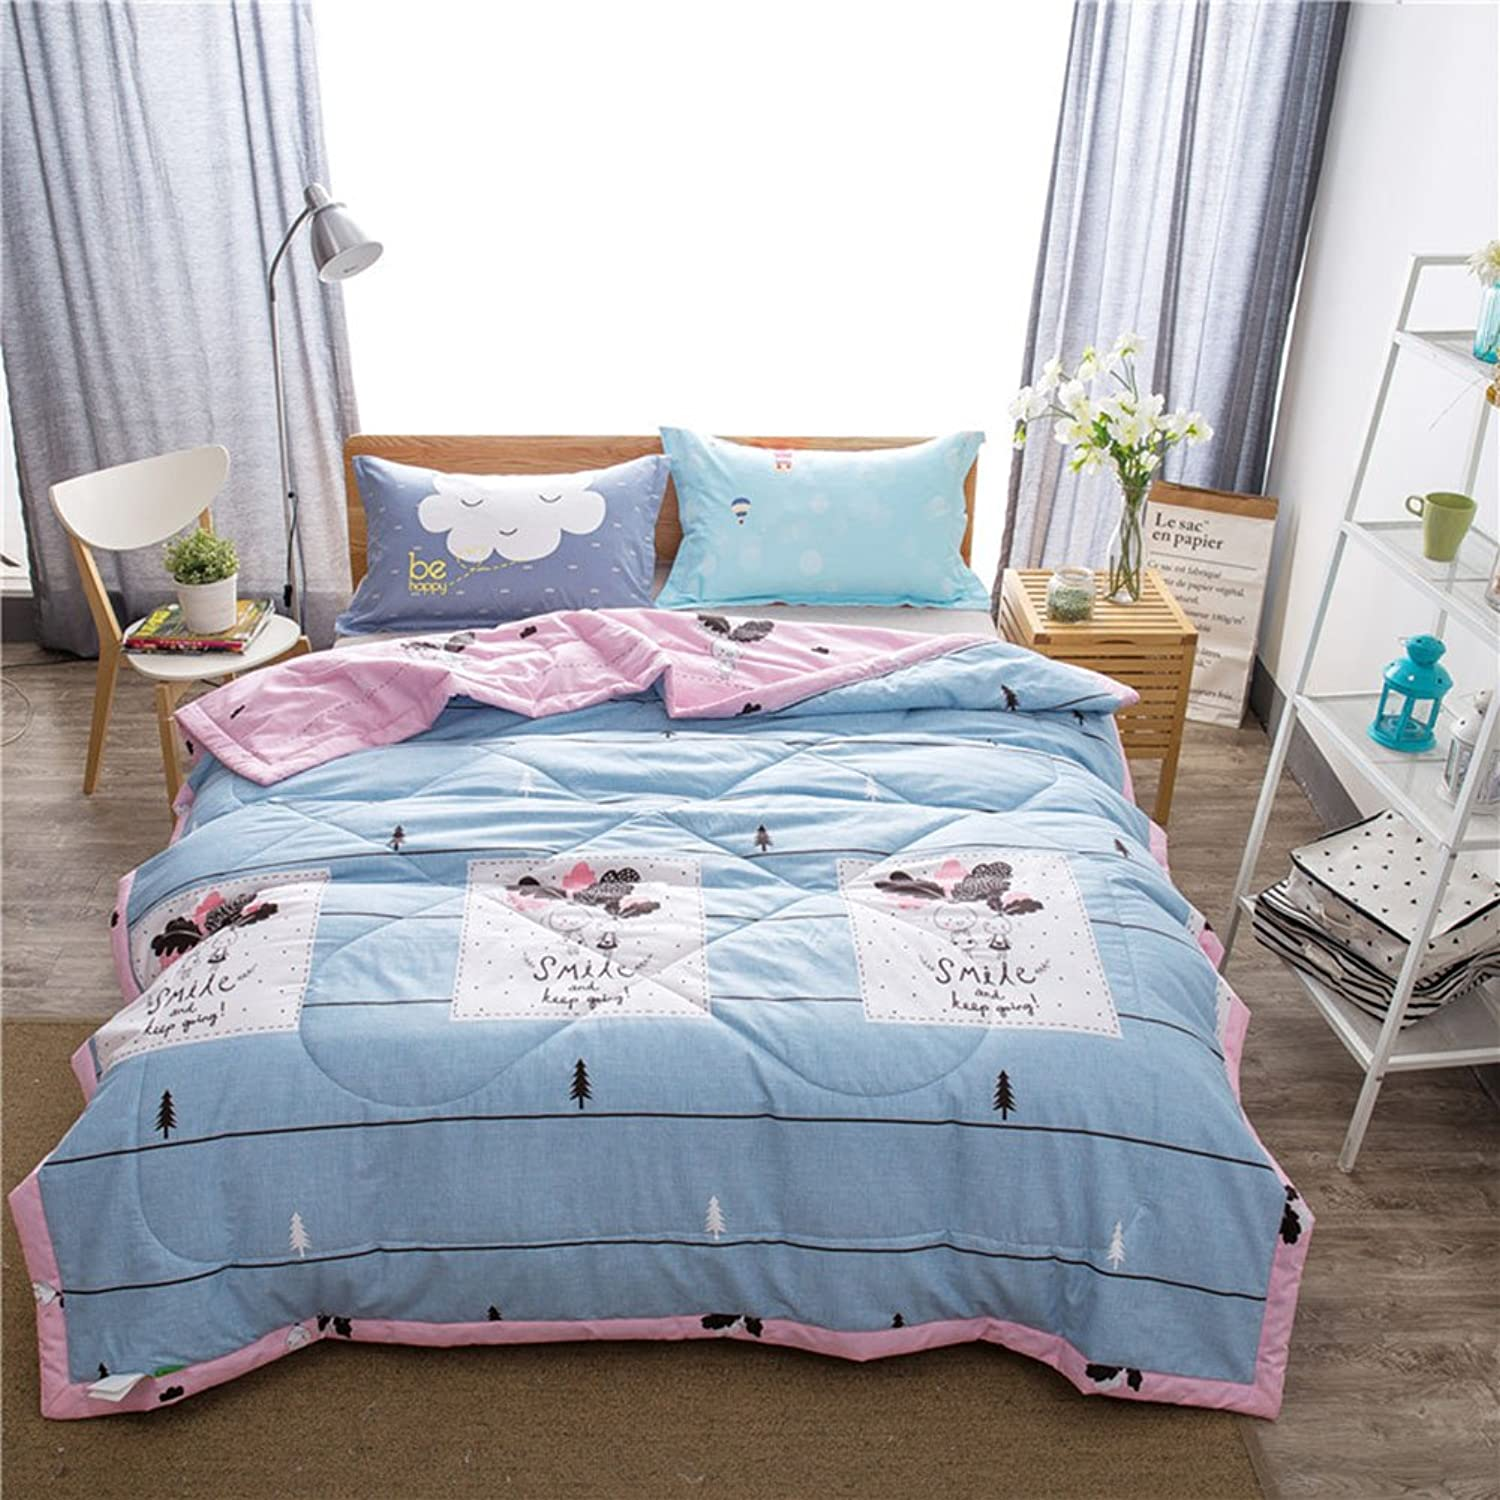 Uther Summer Quilts Twin Radish Girl Printed Thin Comforter Cotton Filled Air Conditioning Blankets for Kids Adults